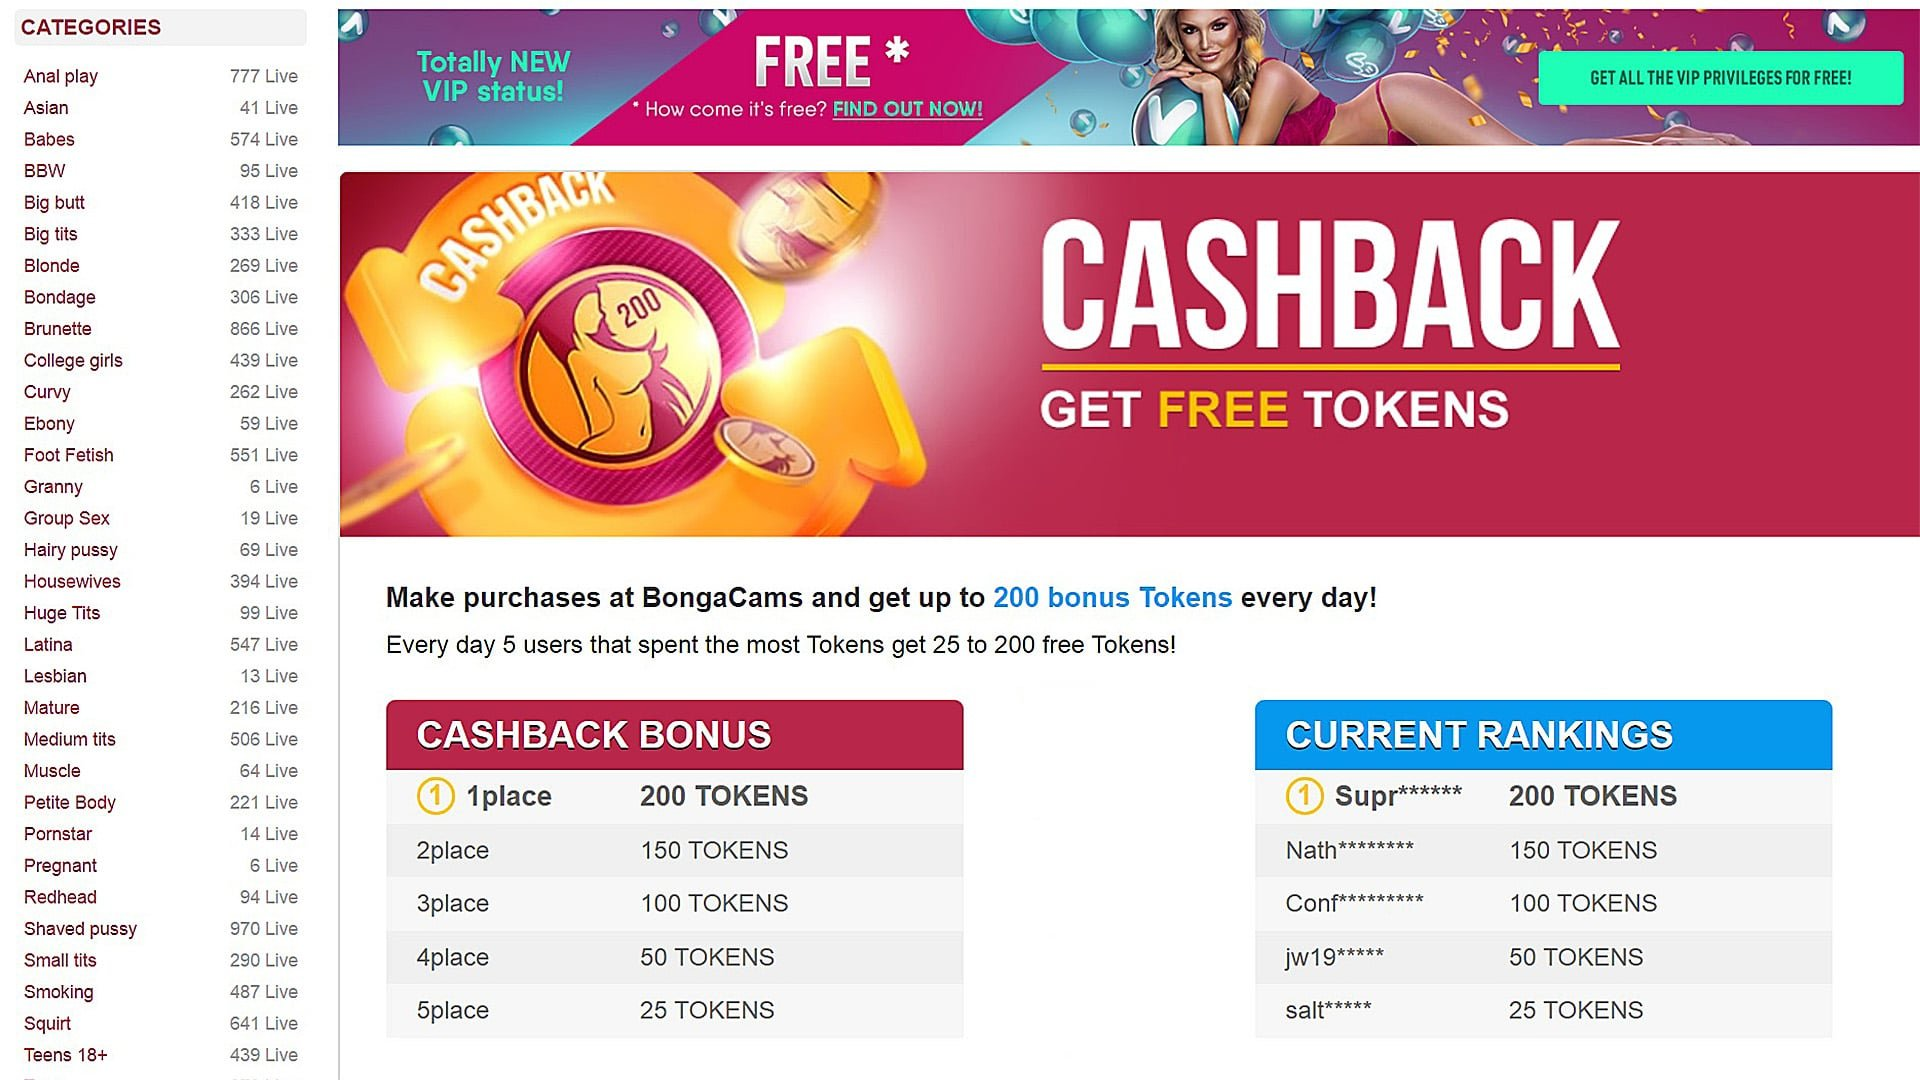 Bongacams Free Tokens With Cash Back